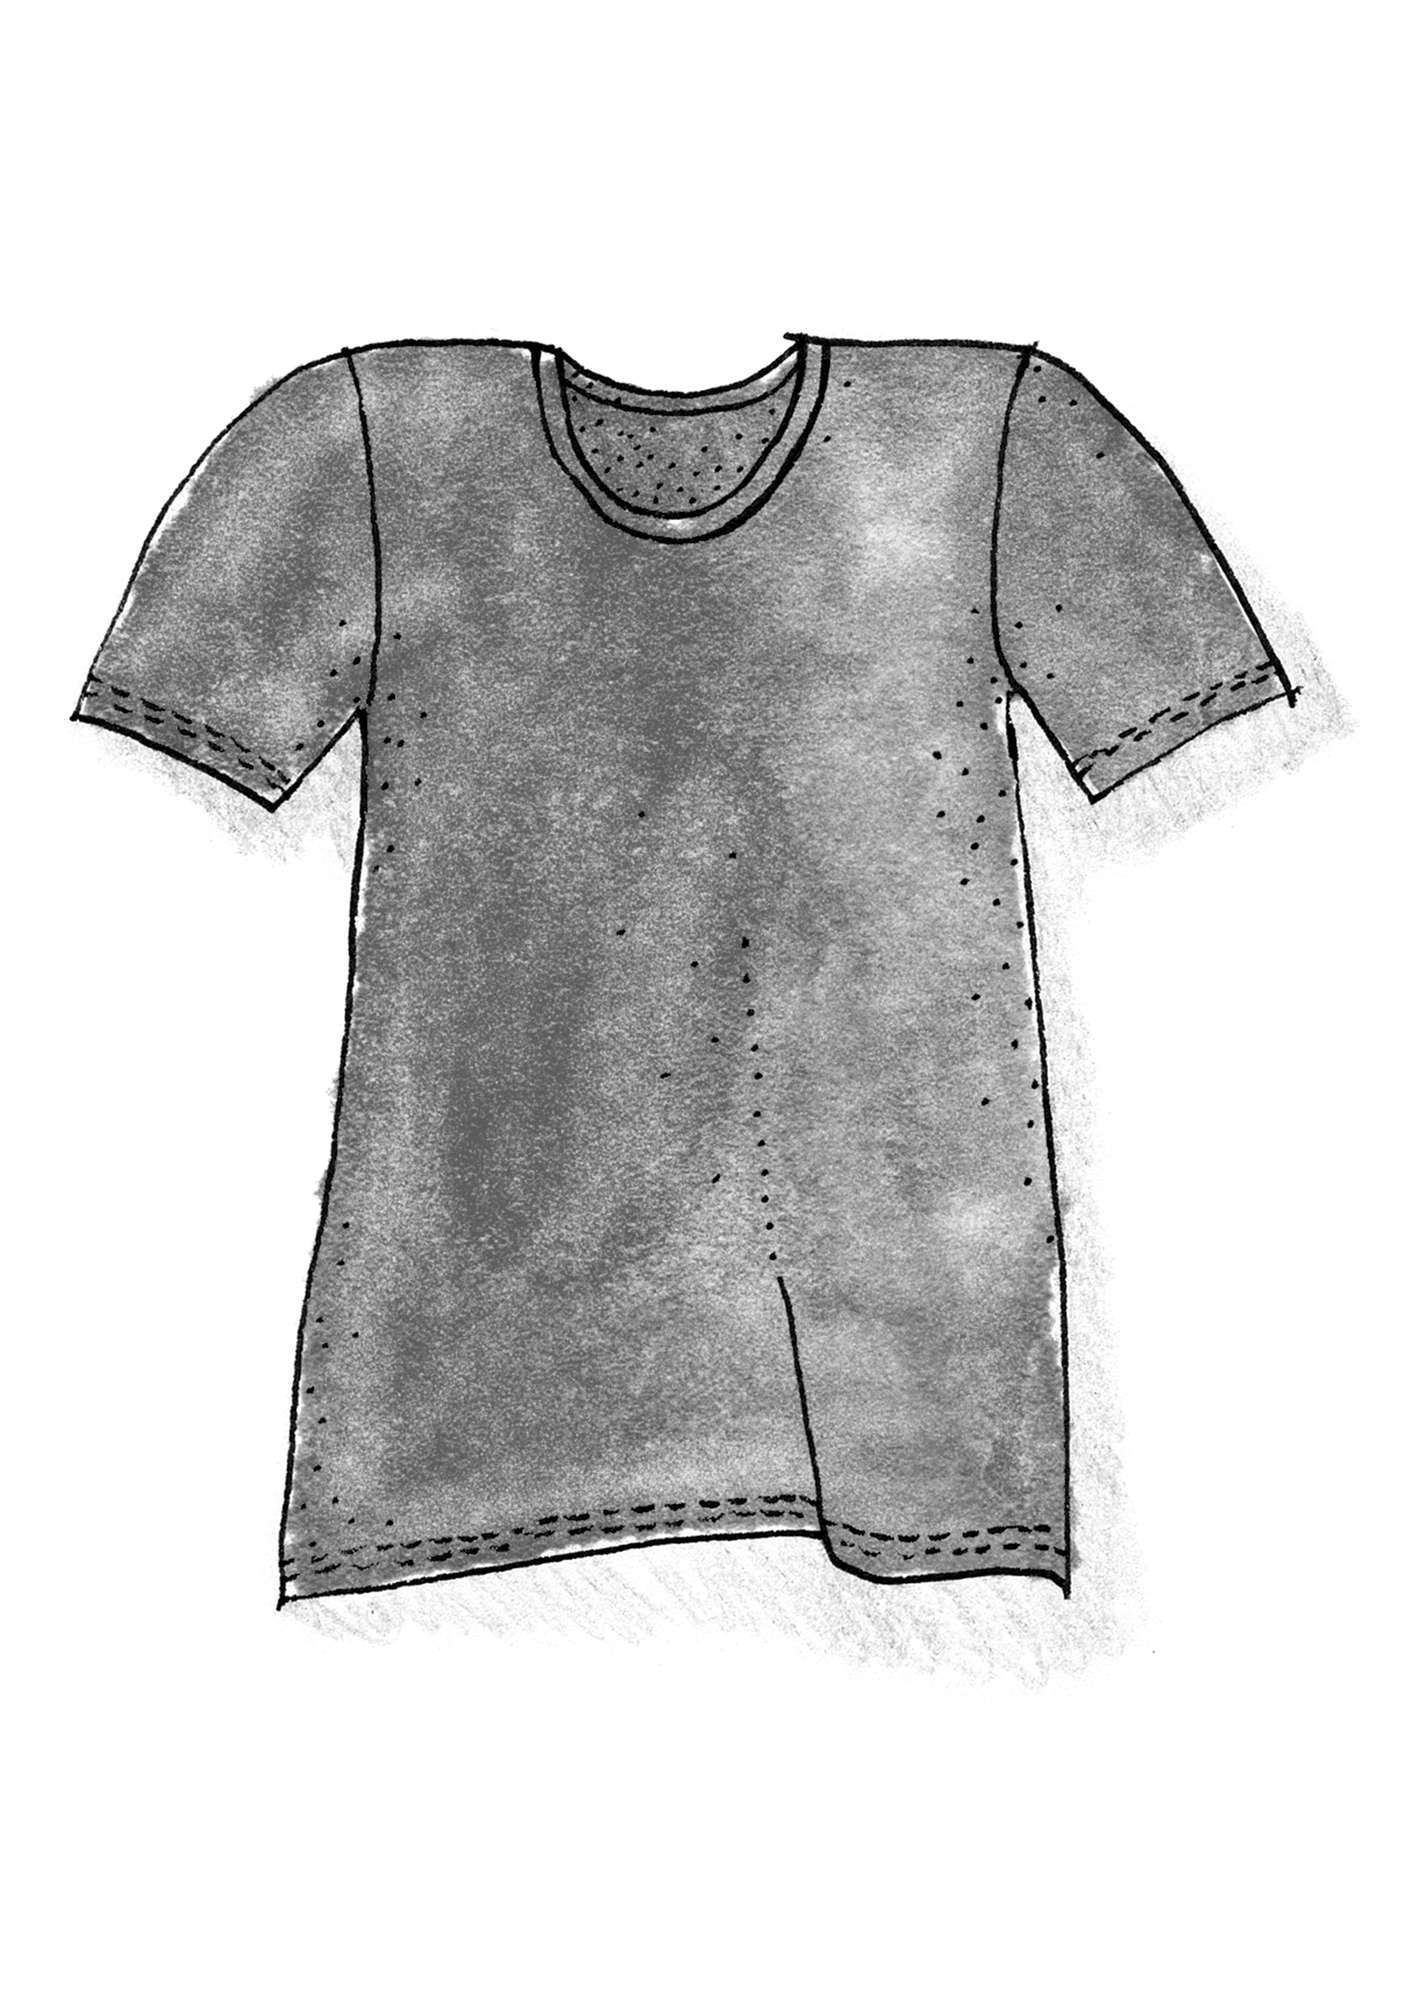 T-shirt in eco-cotton/elastane grey melange